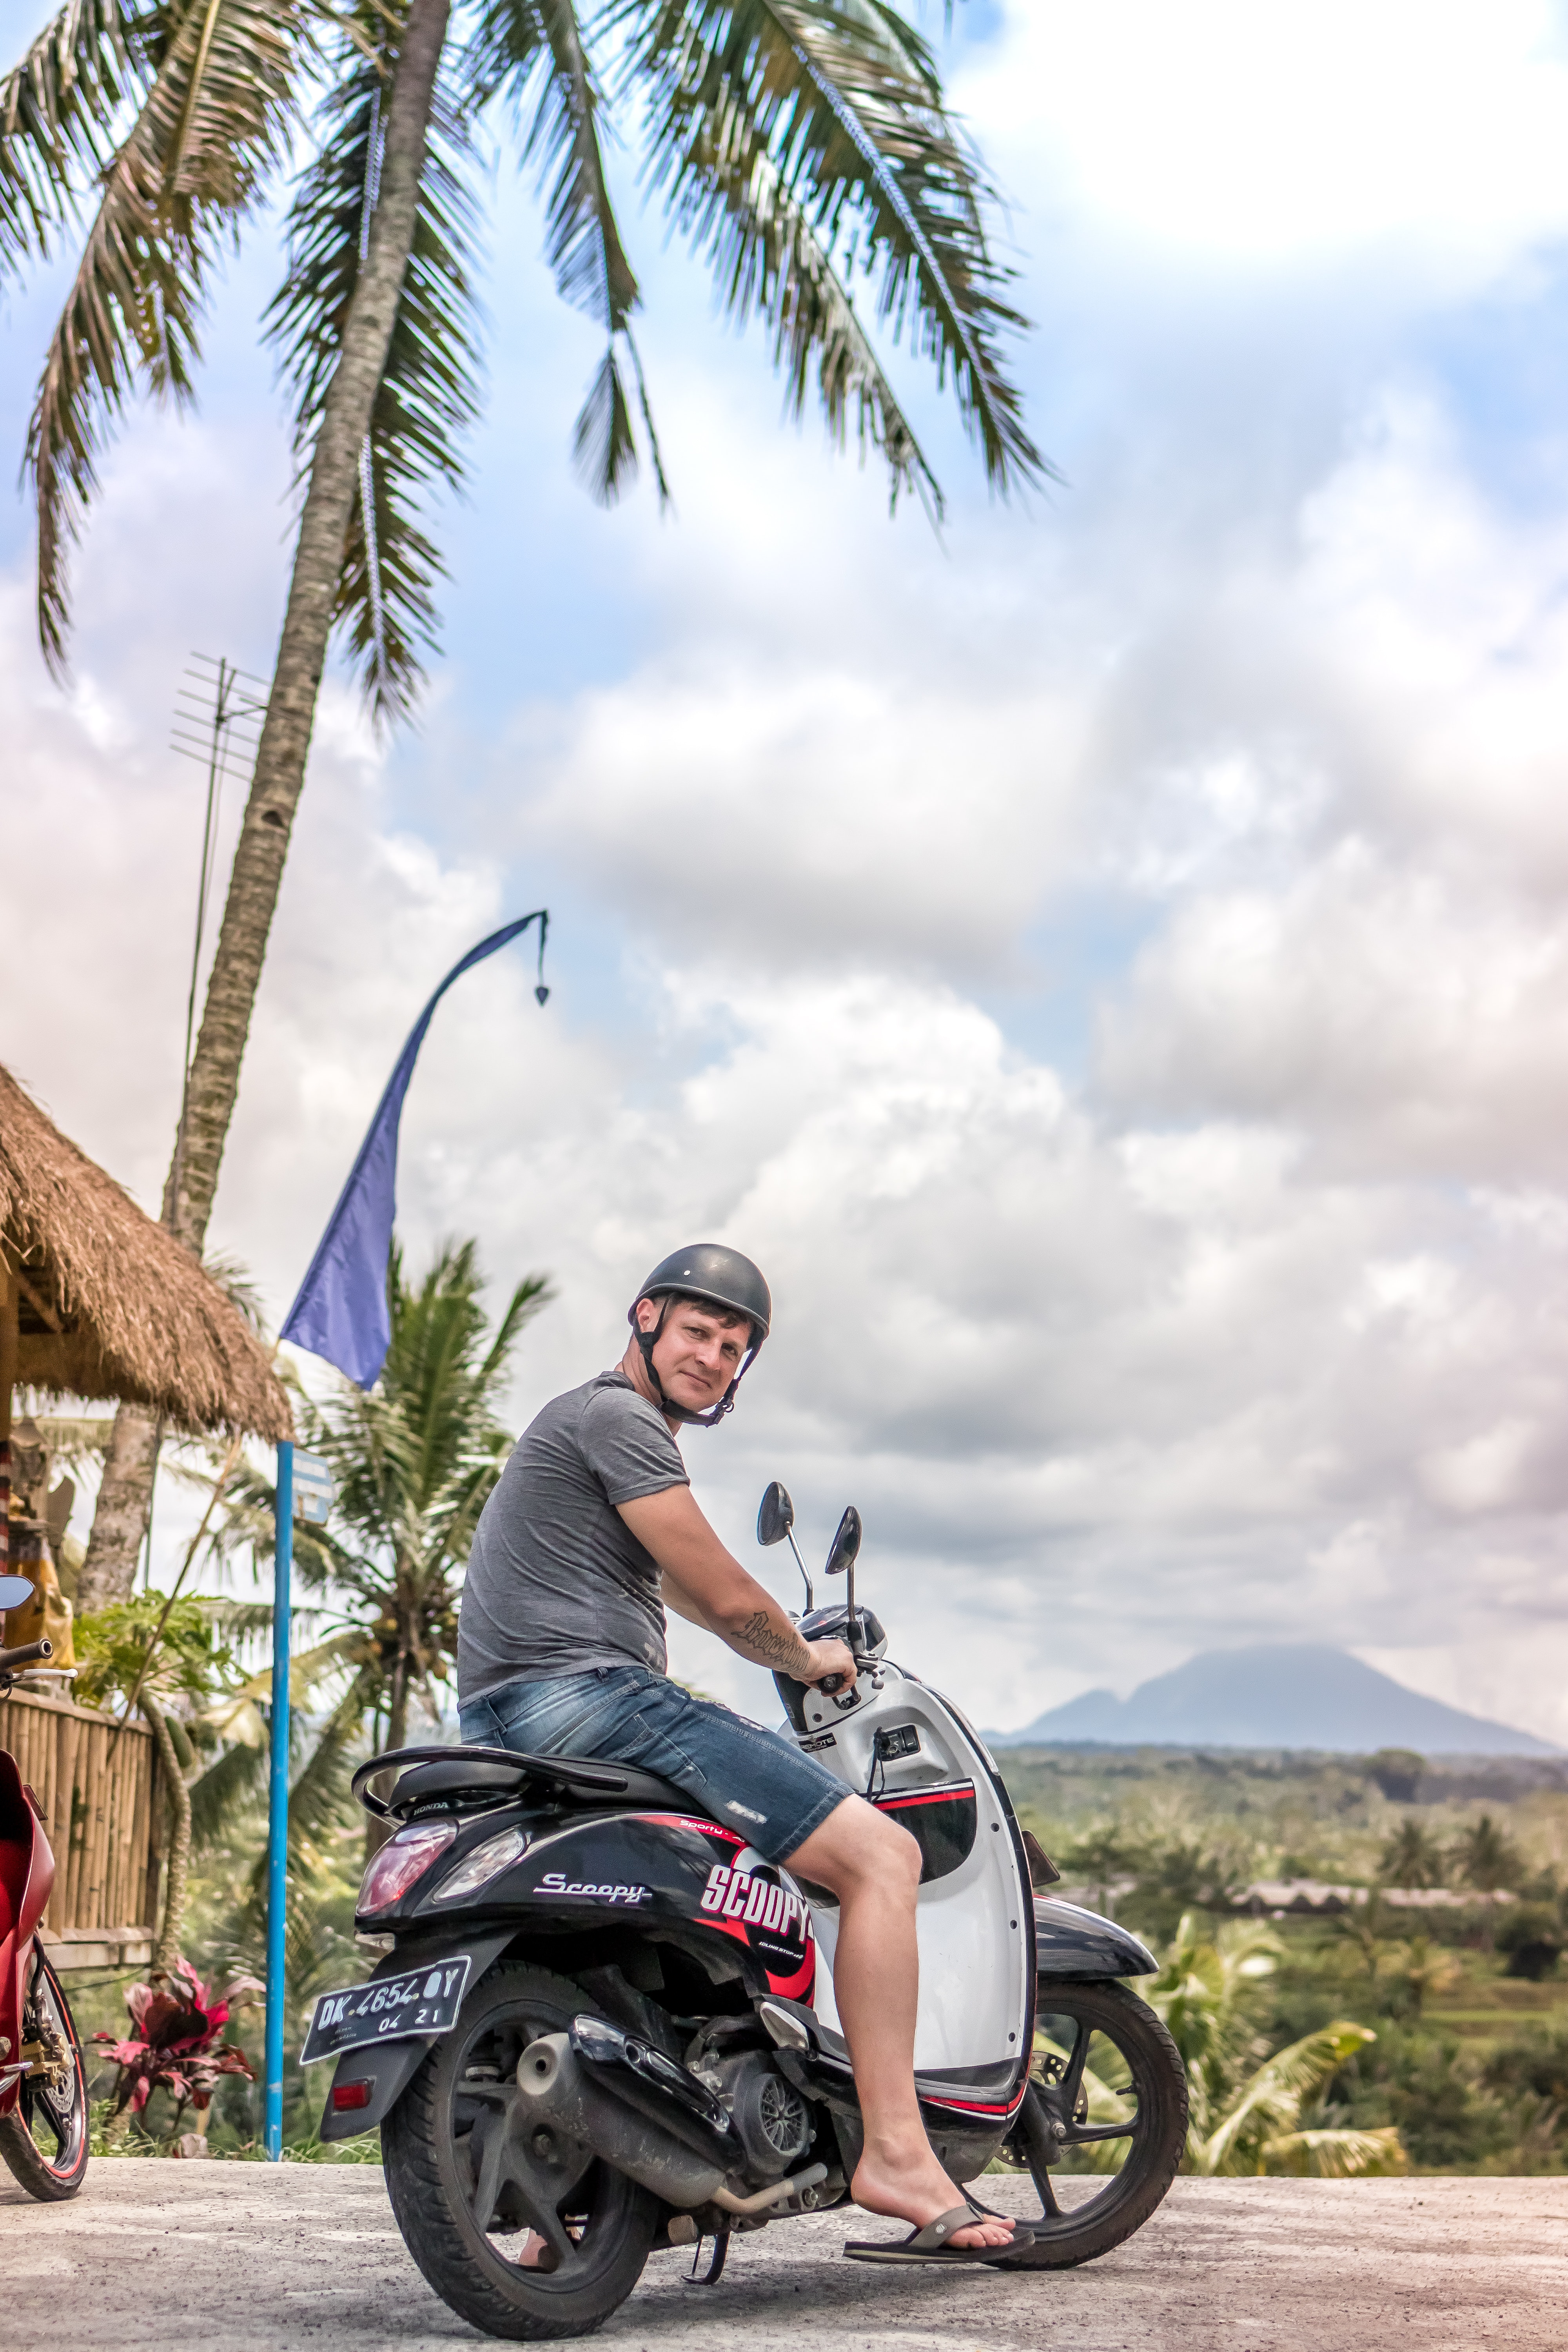 Man Riding Motor Scooter, Adult, Summer, Recreation, Riding, HQ Photo